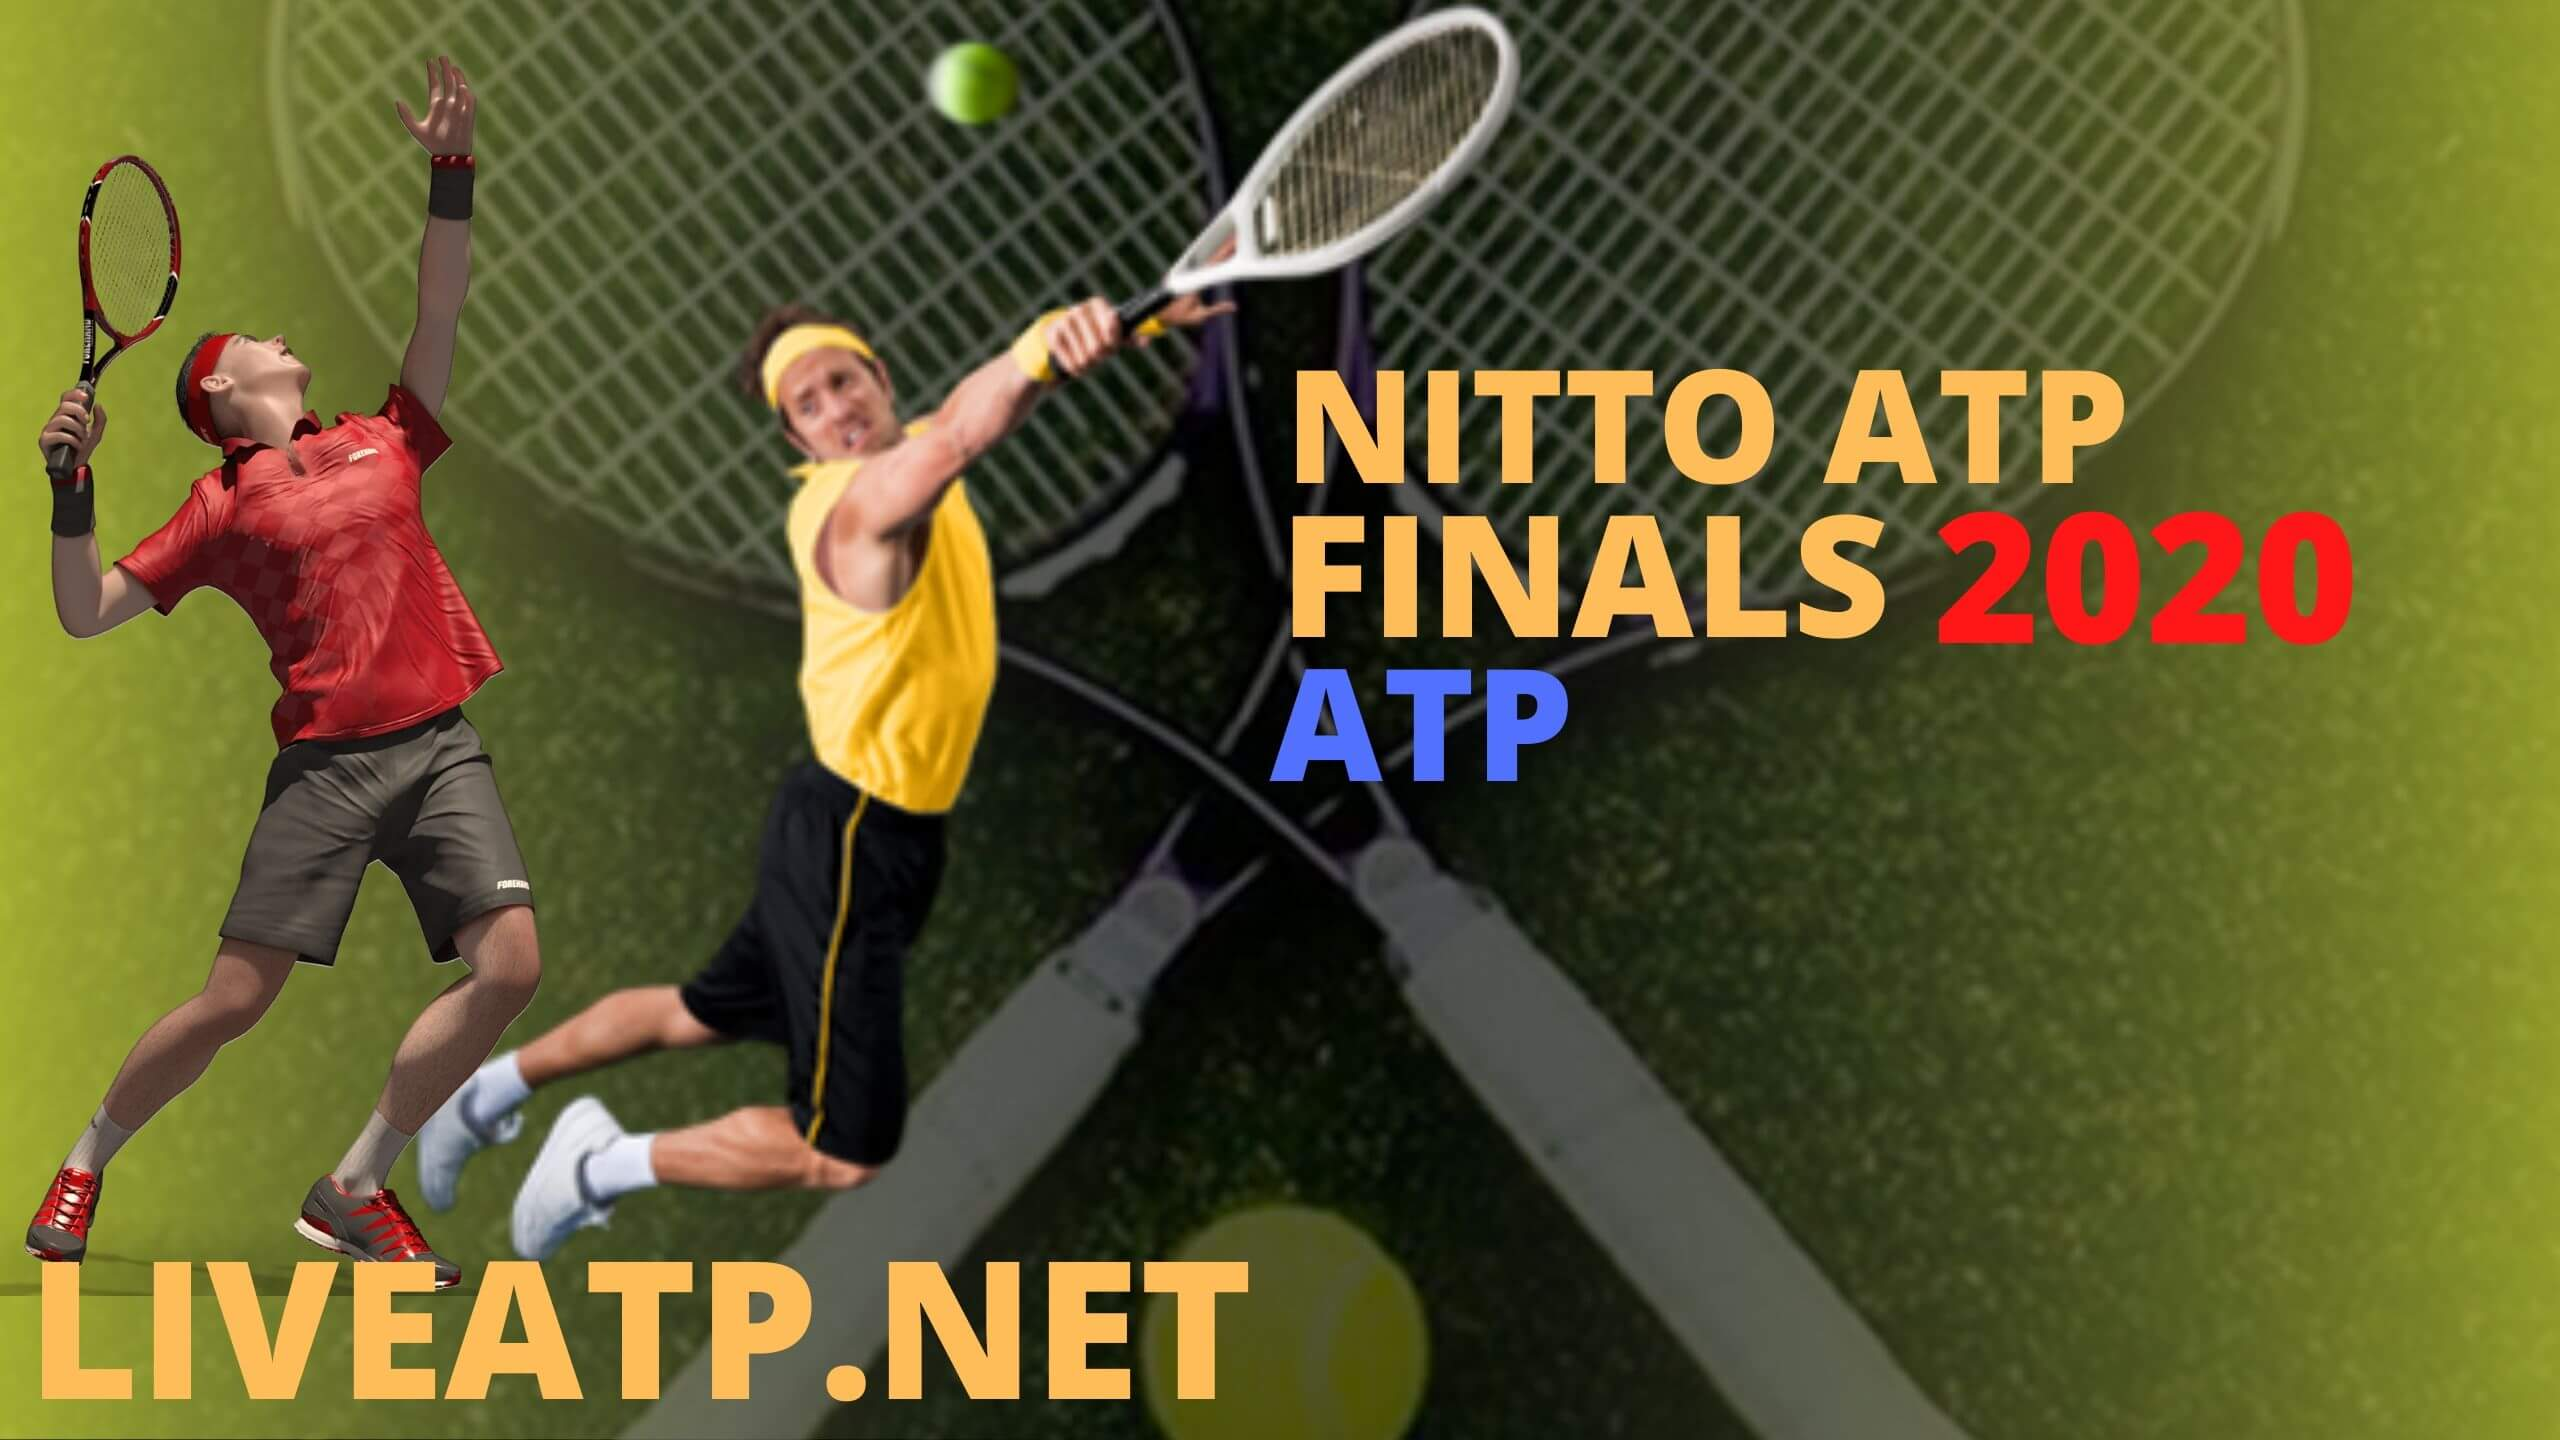 Nitto ATP Finals Live Stream 2020 |  Day 1